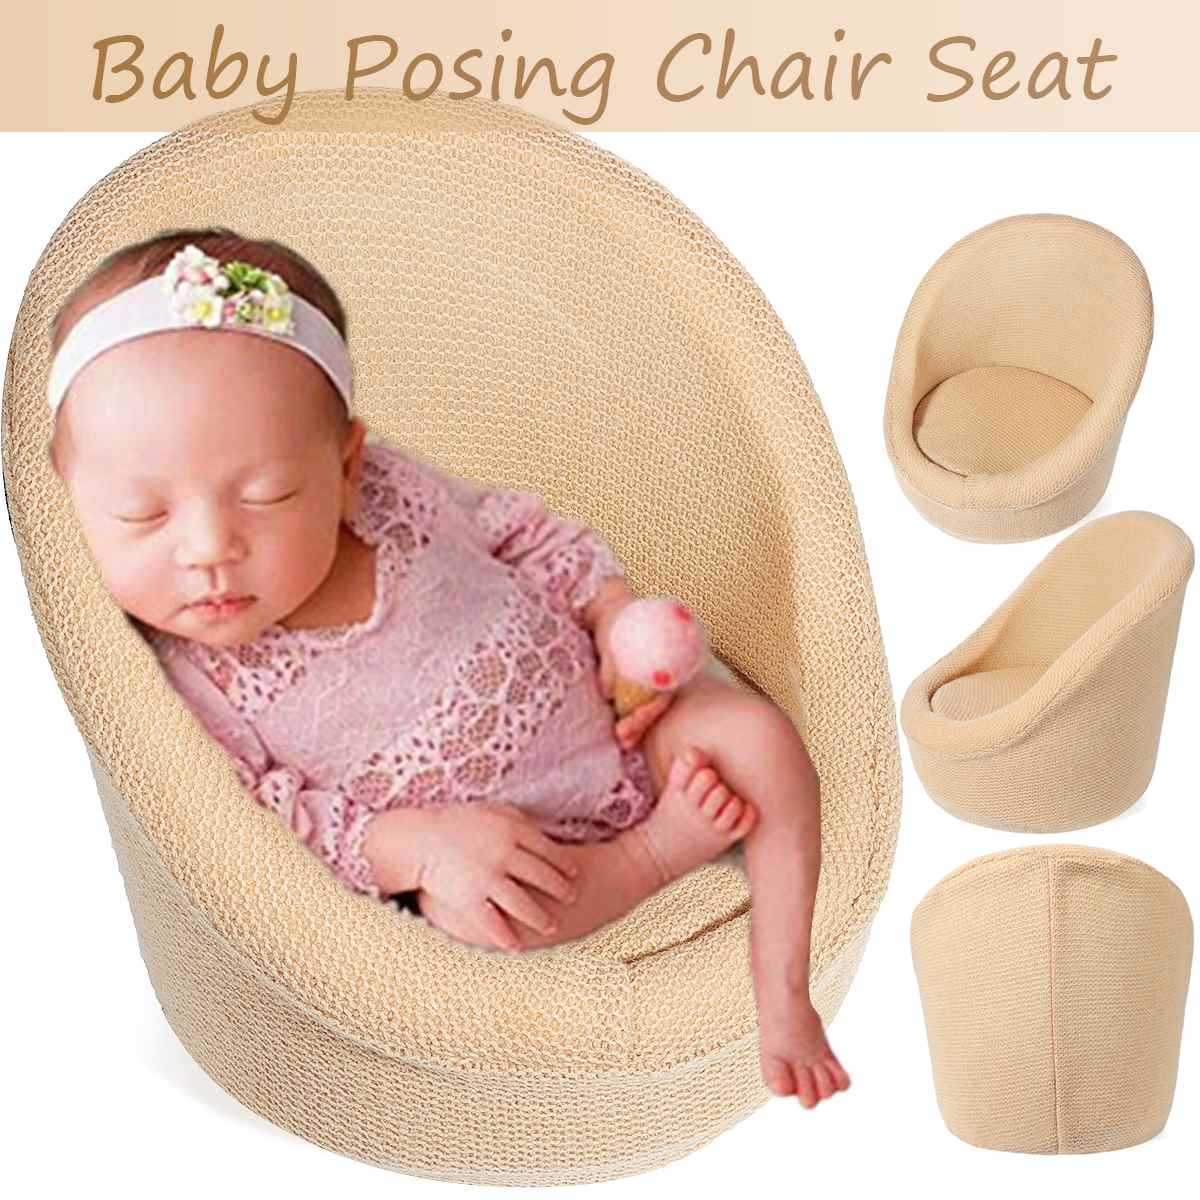 Newborn Photography Props Baby Posing Sofa Newborn Basket Props Baby Photography Studio Infant Photoshoot Furniture